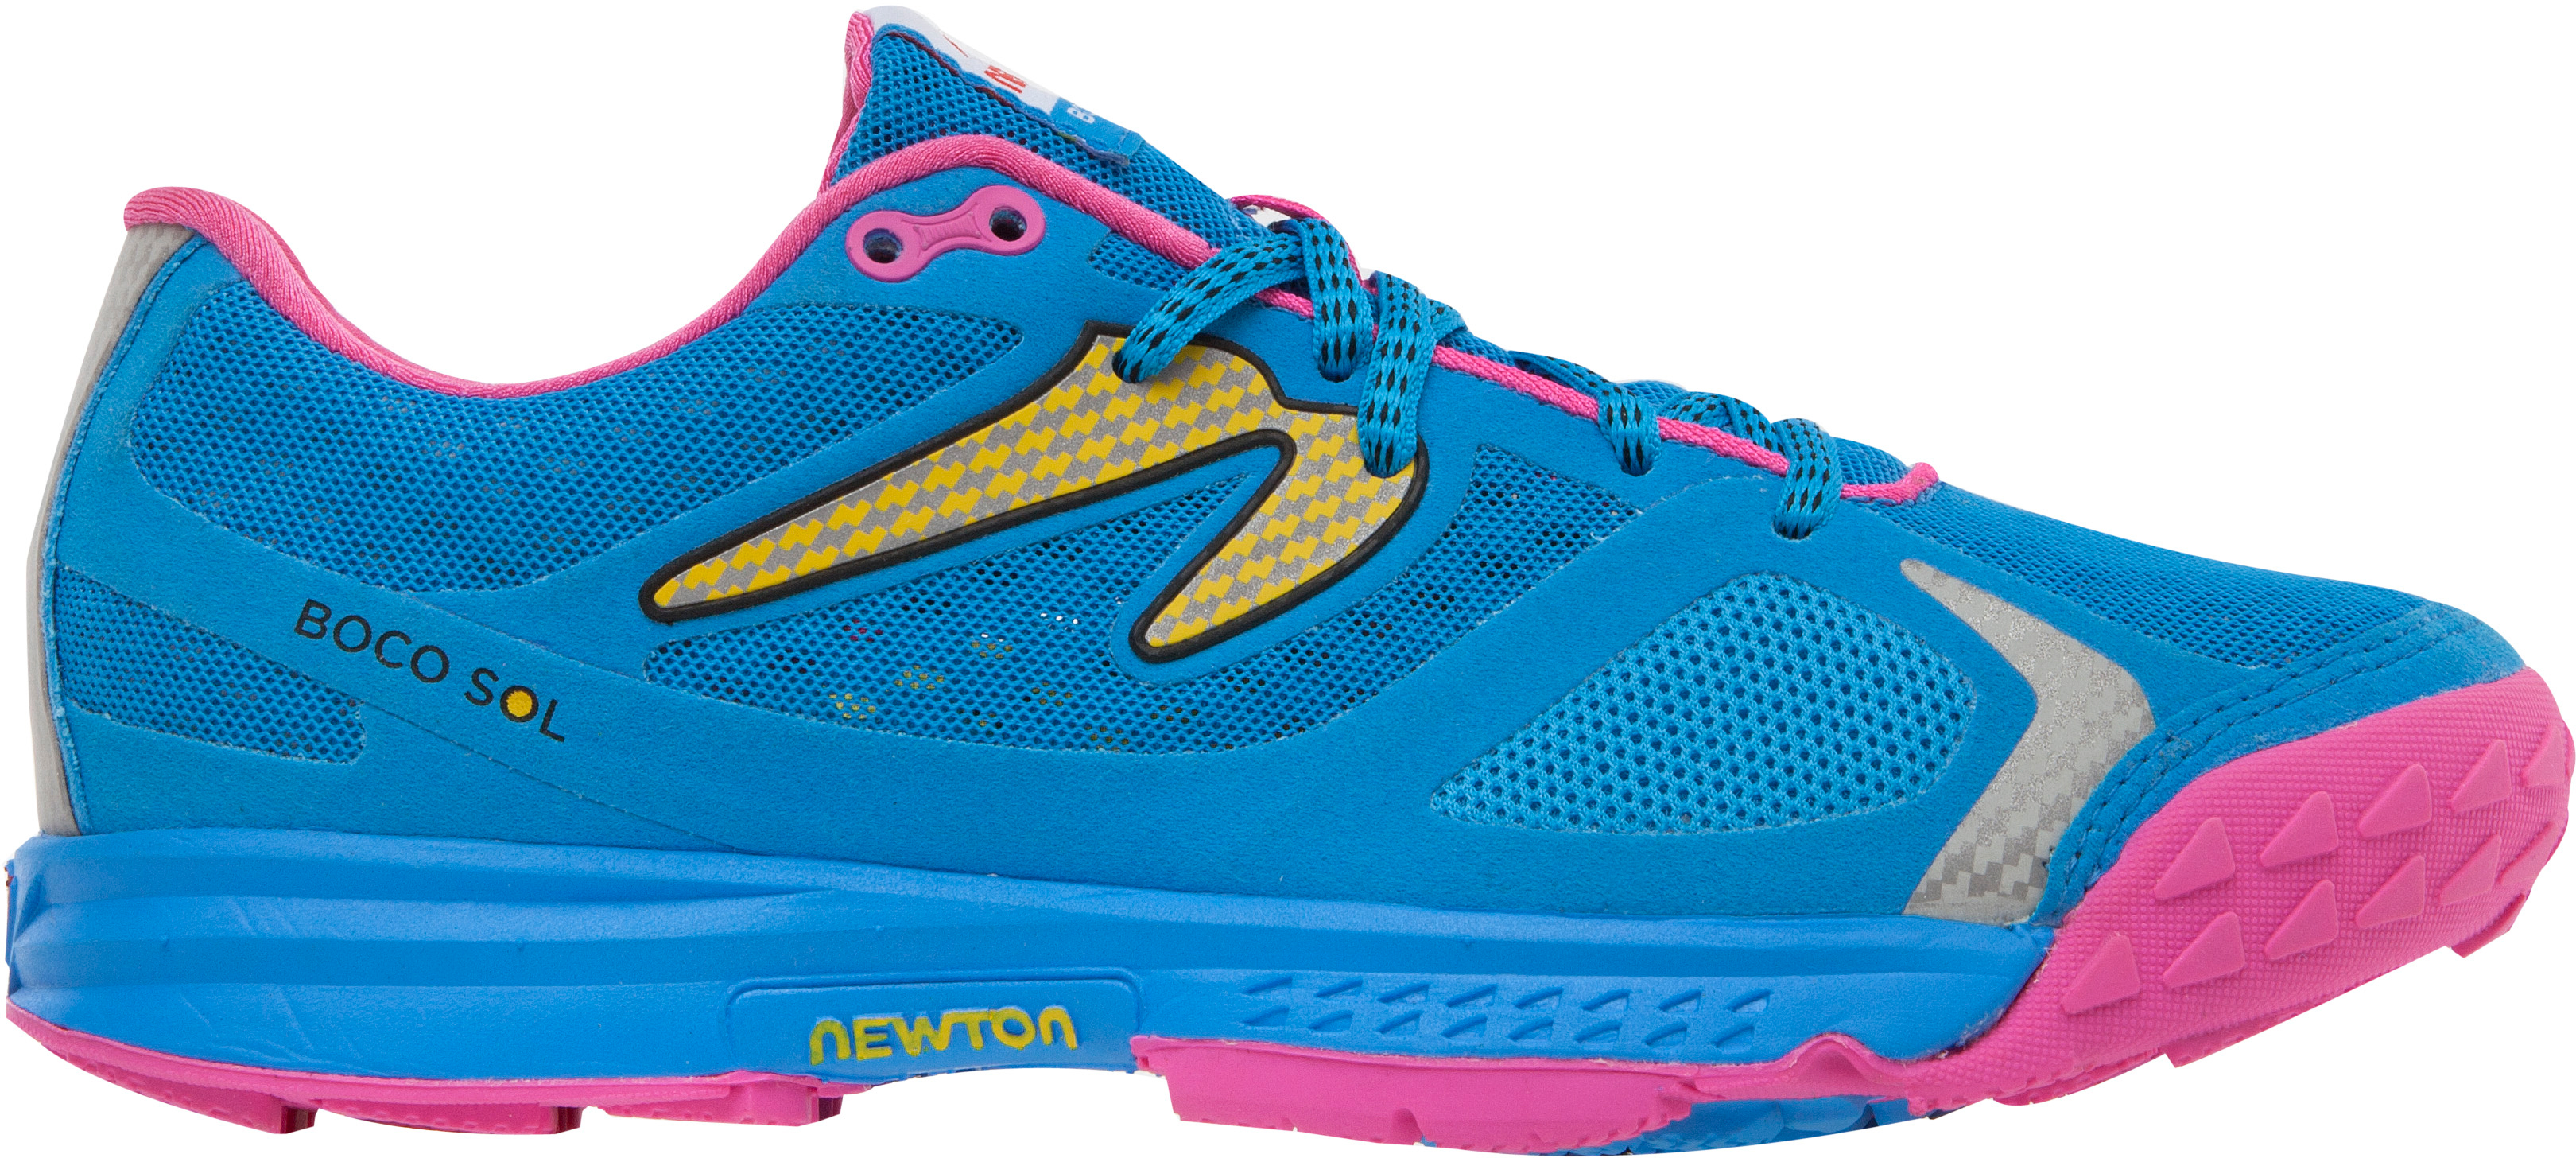 Play Running Shoes Asia Newton Codes 2018 Coupon QCoWBrdEex